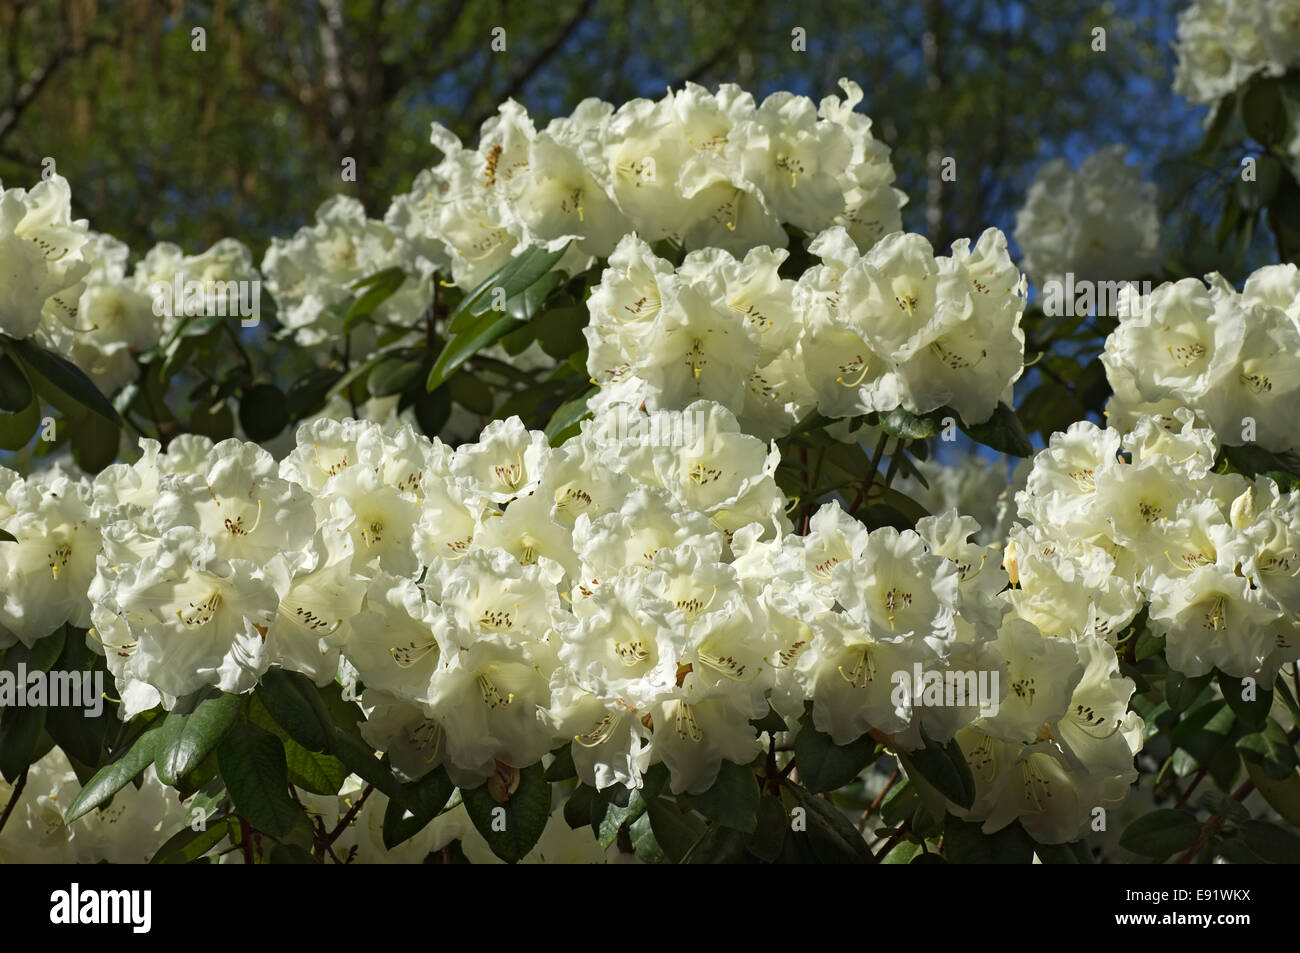 White Flowered Rhododendron Stock Photo 74415486 Alamy